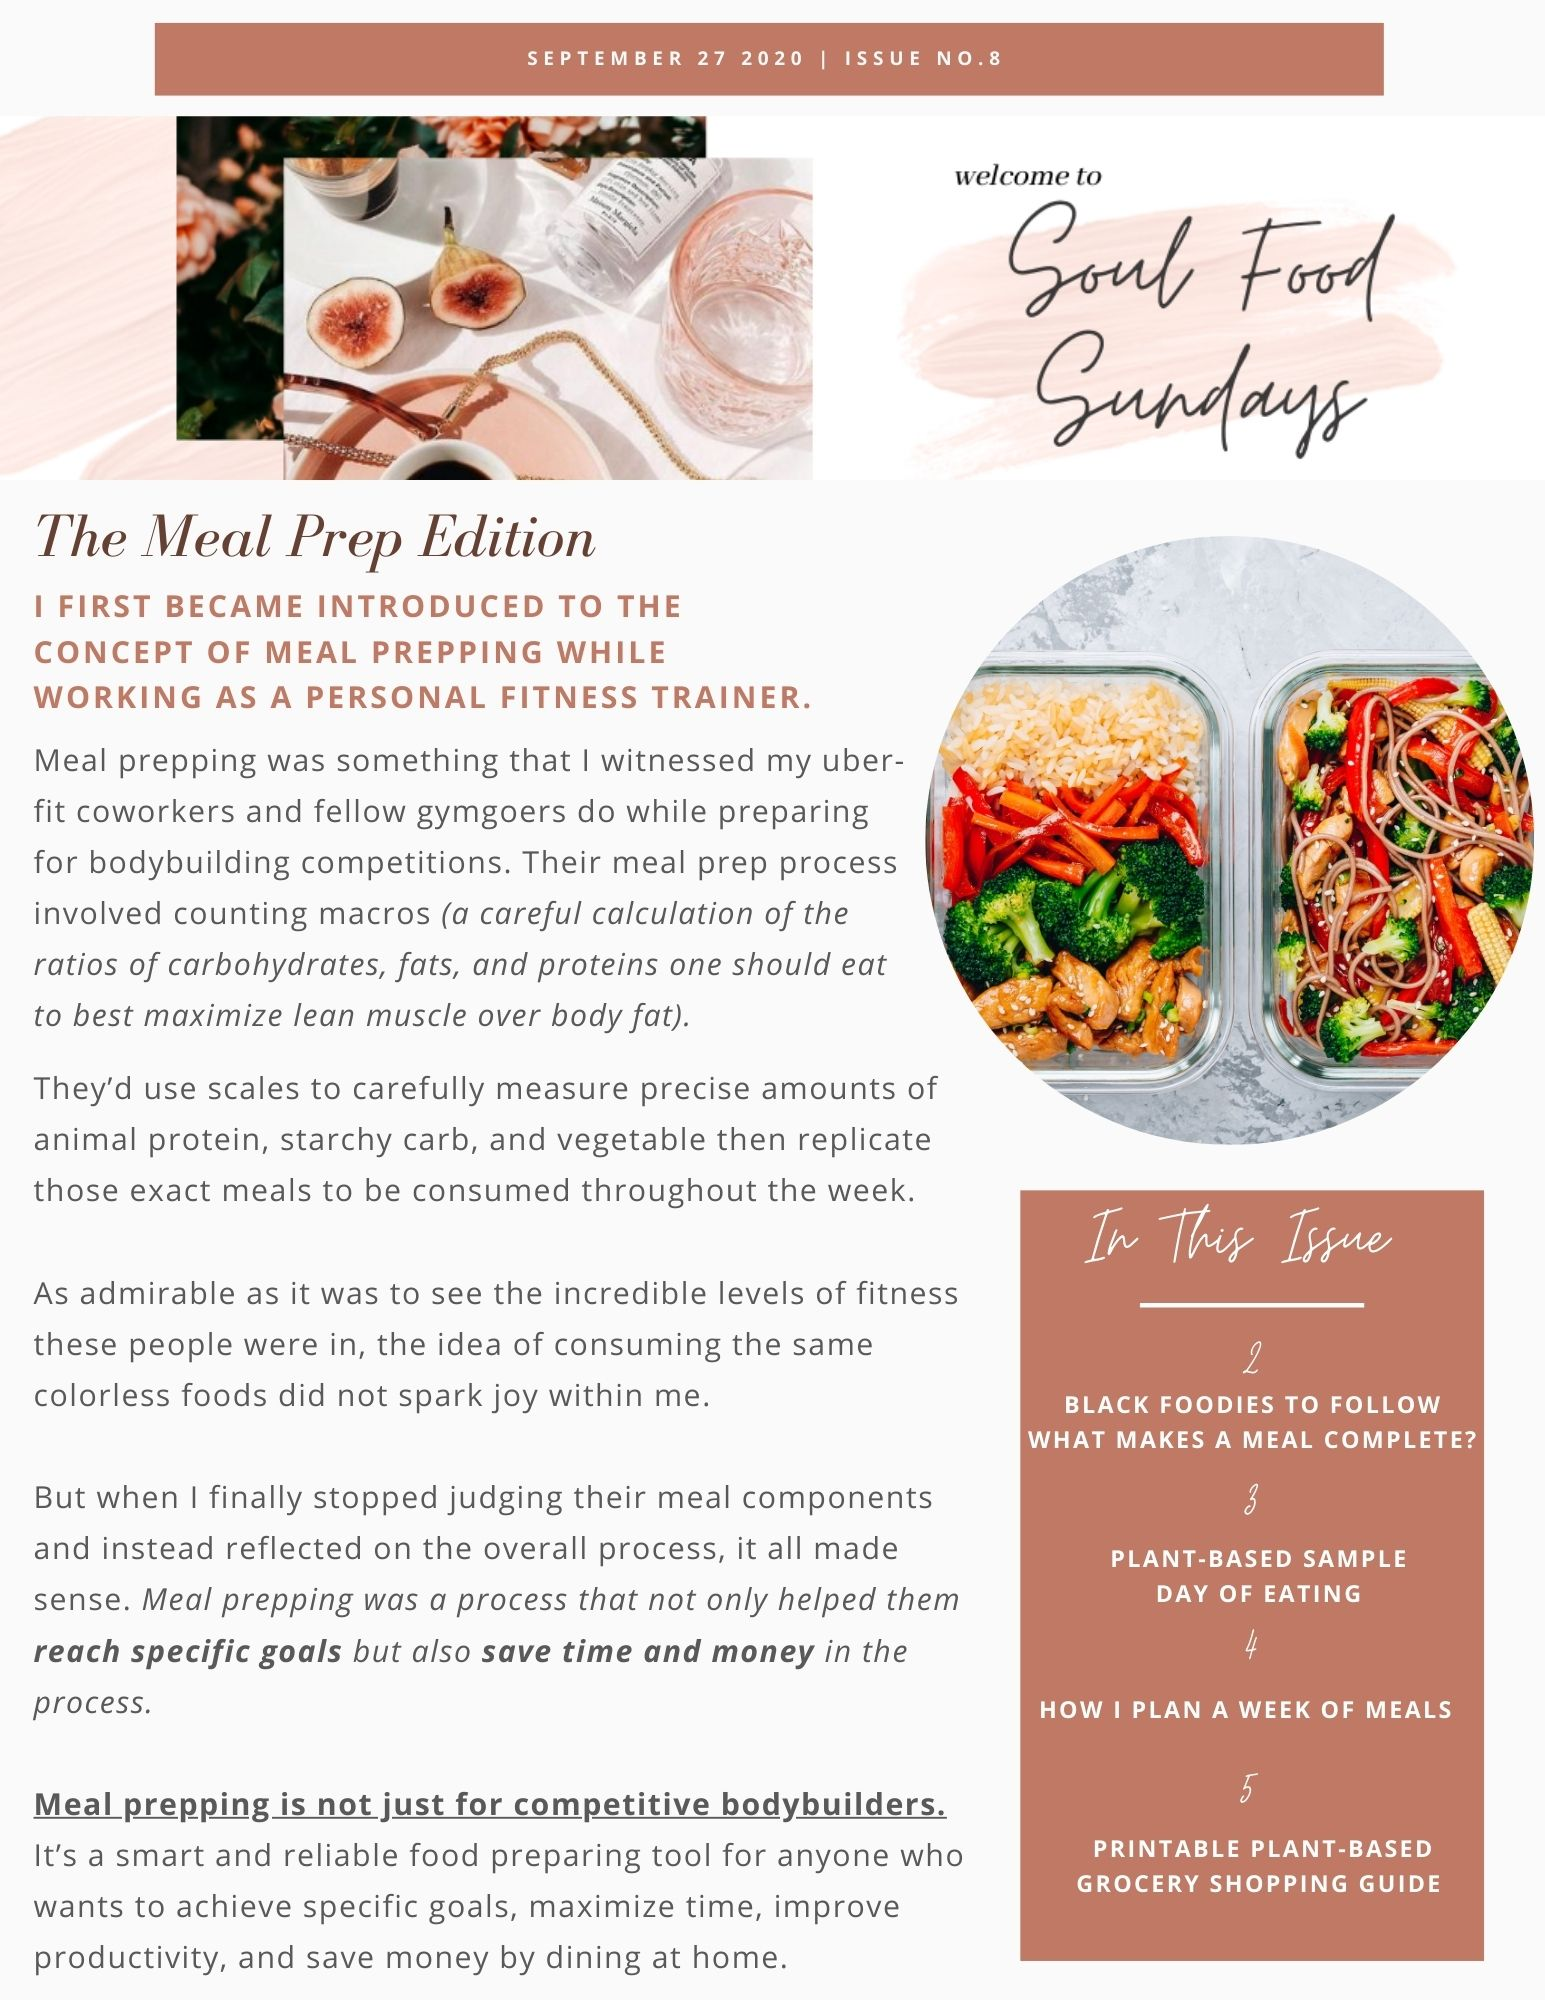 The 8th edition of my weekly wellness newsletter, Soul Food Sundays discusses how to plan for a week of healthy meals.